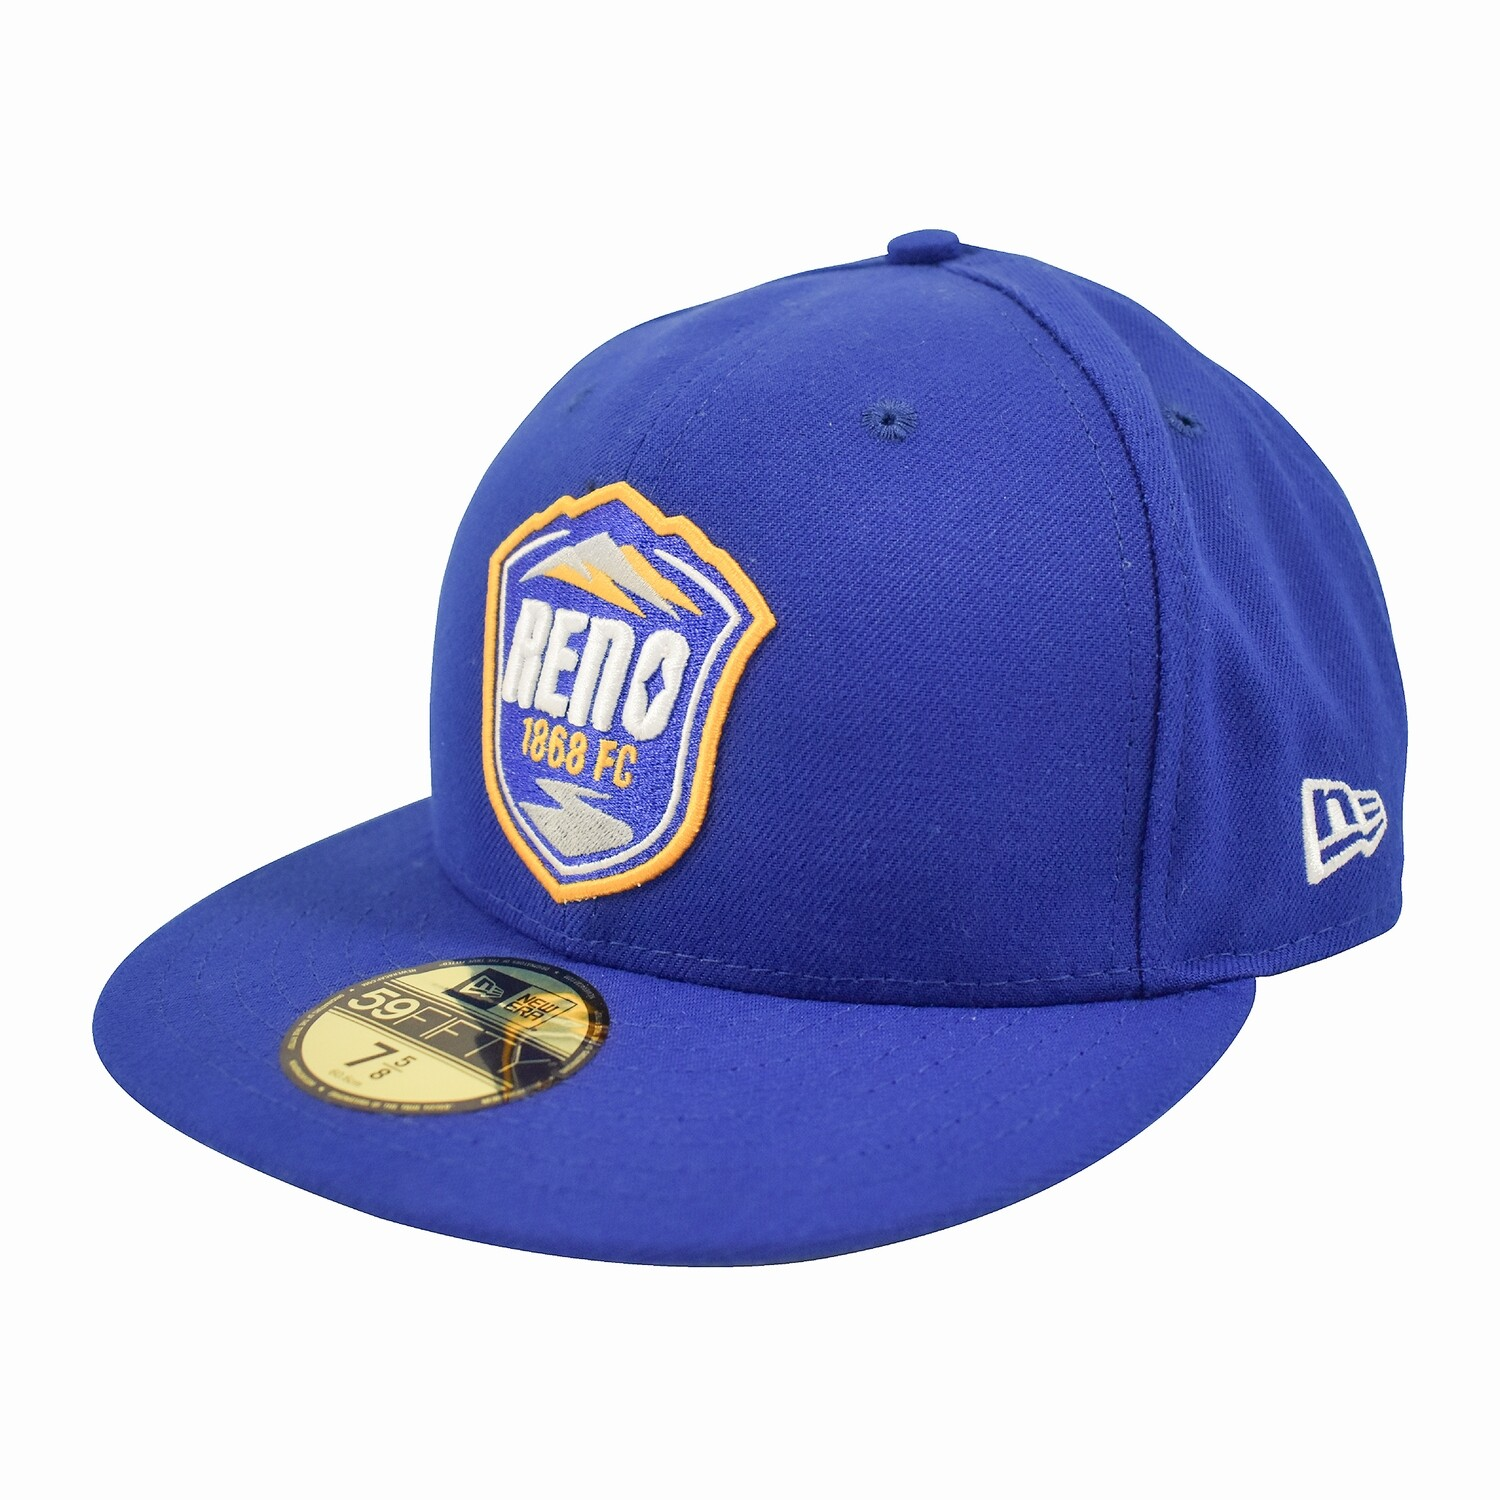 Reno 1868 FC New Era 59Fifty Fitted Hat